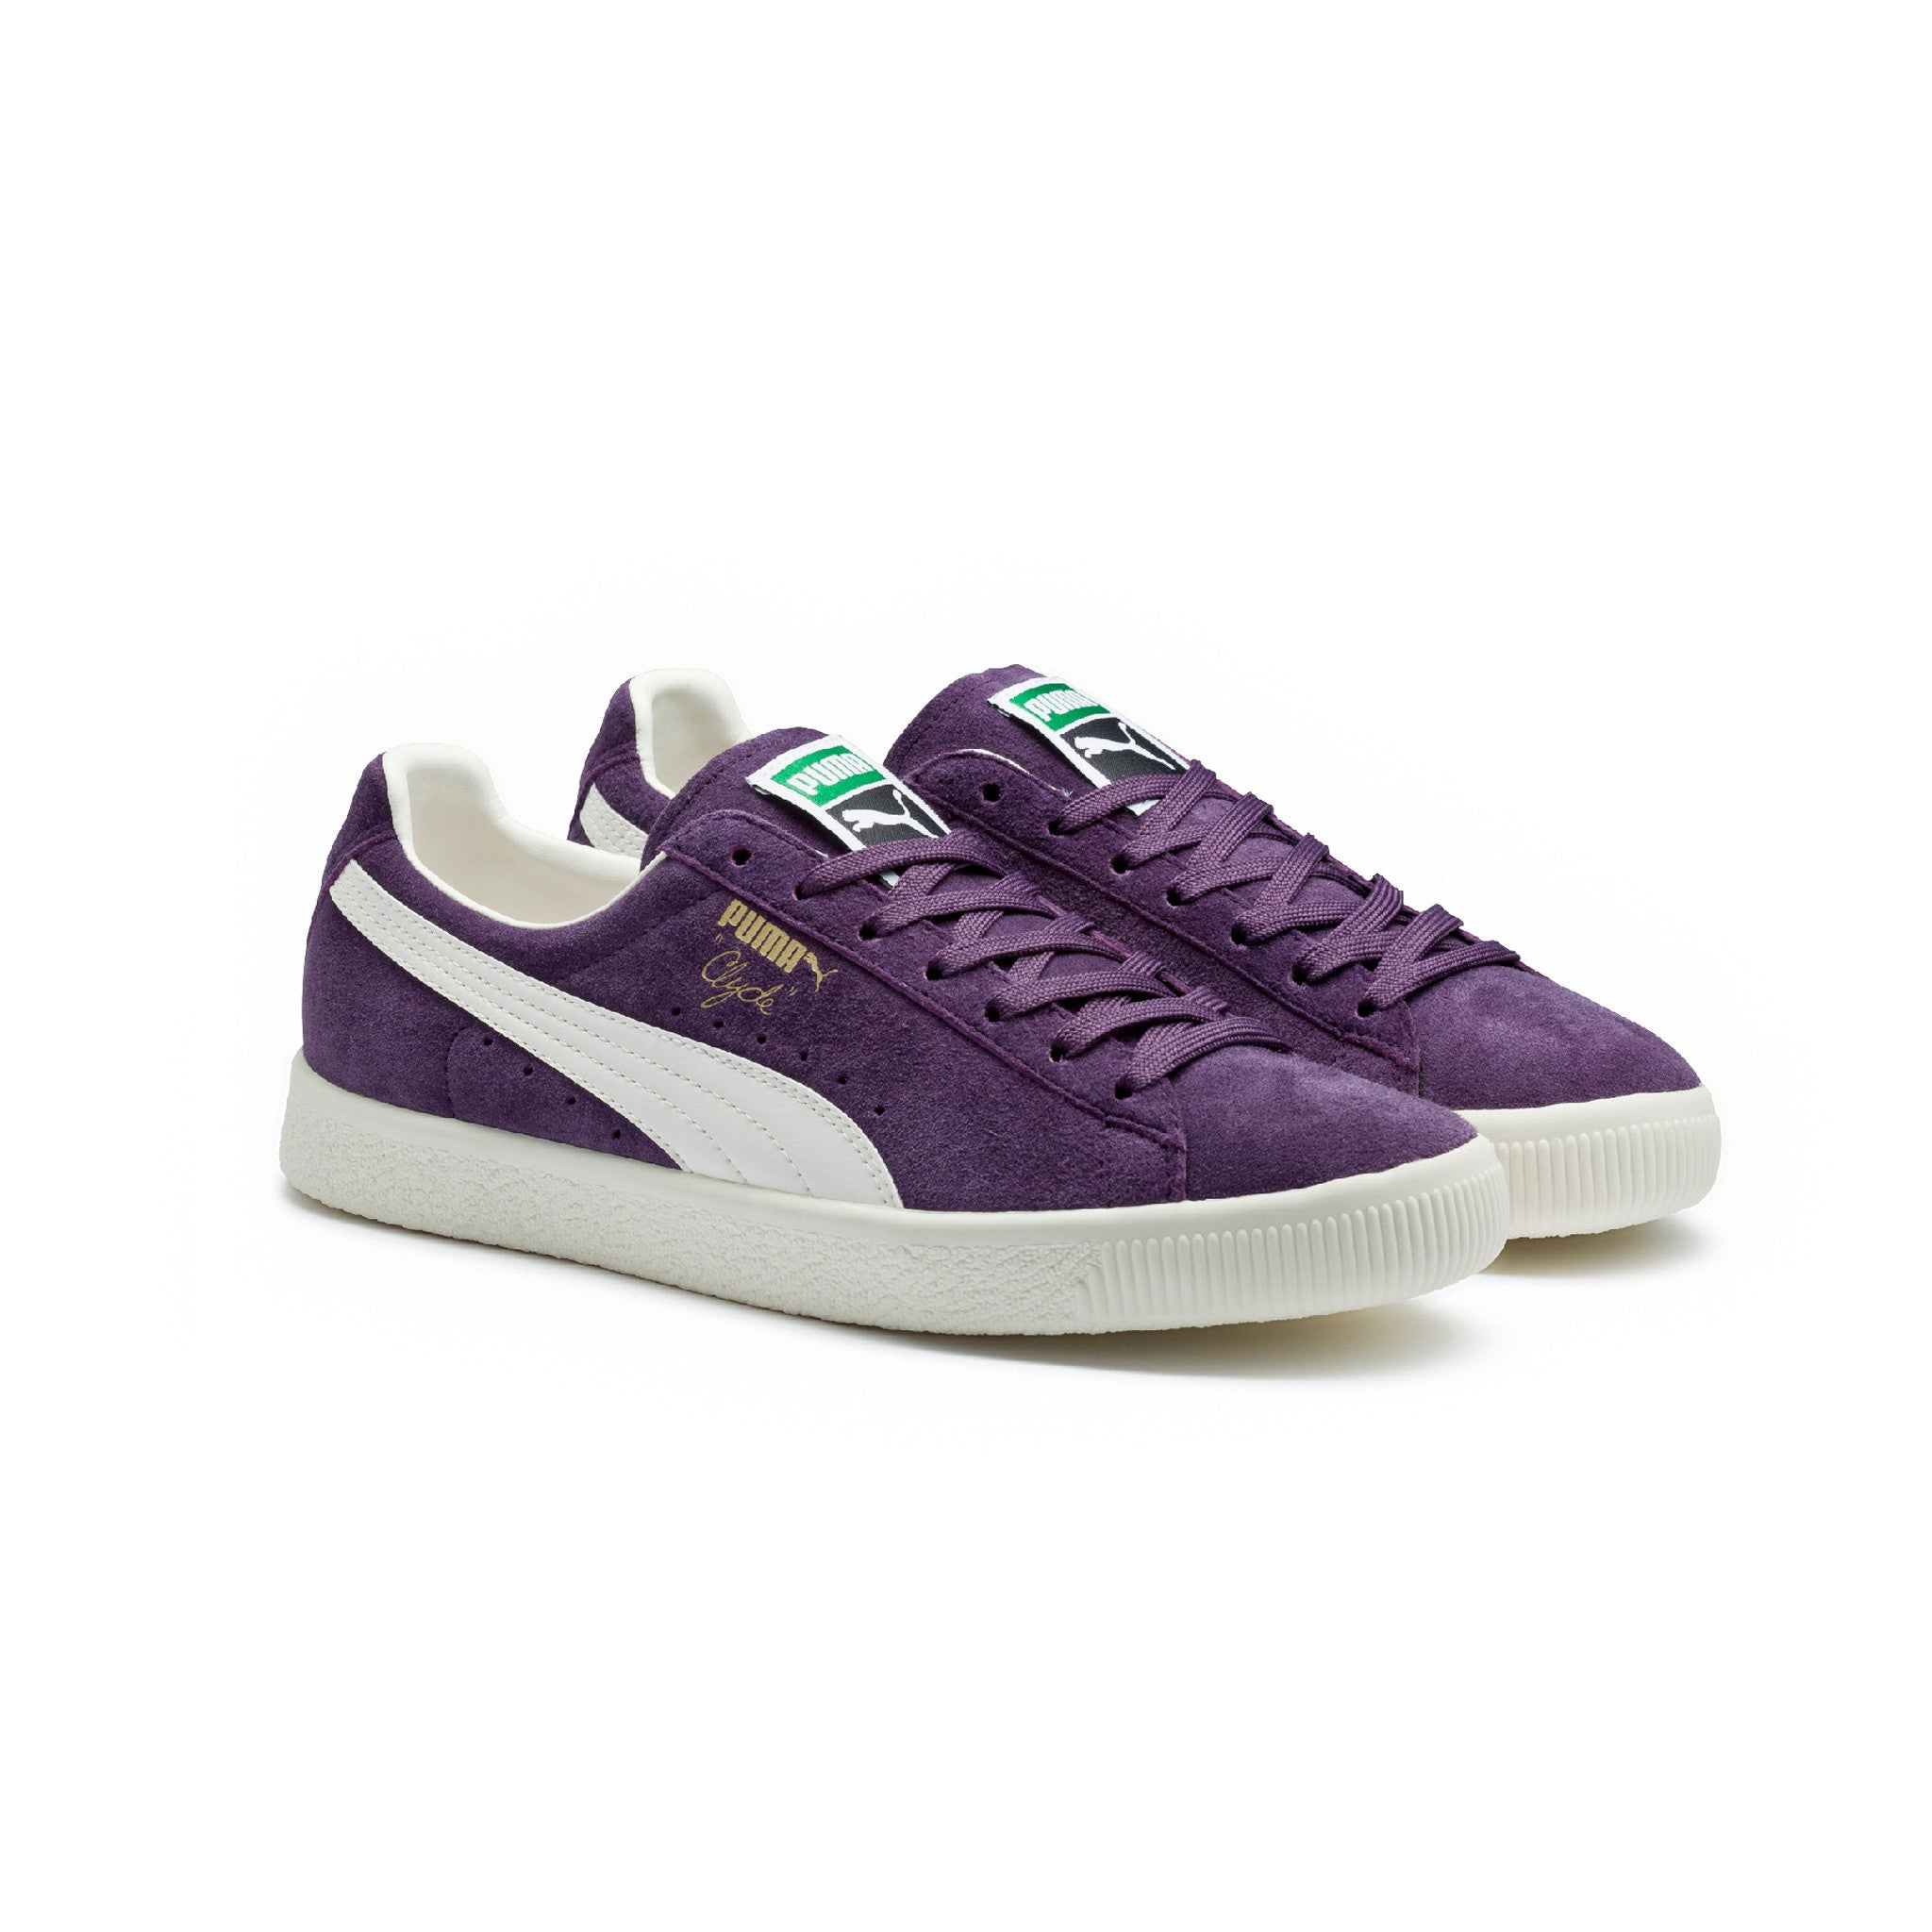 Clyde Premium Core Puma Sneakers Purple Angled View